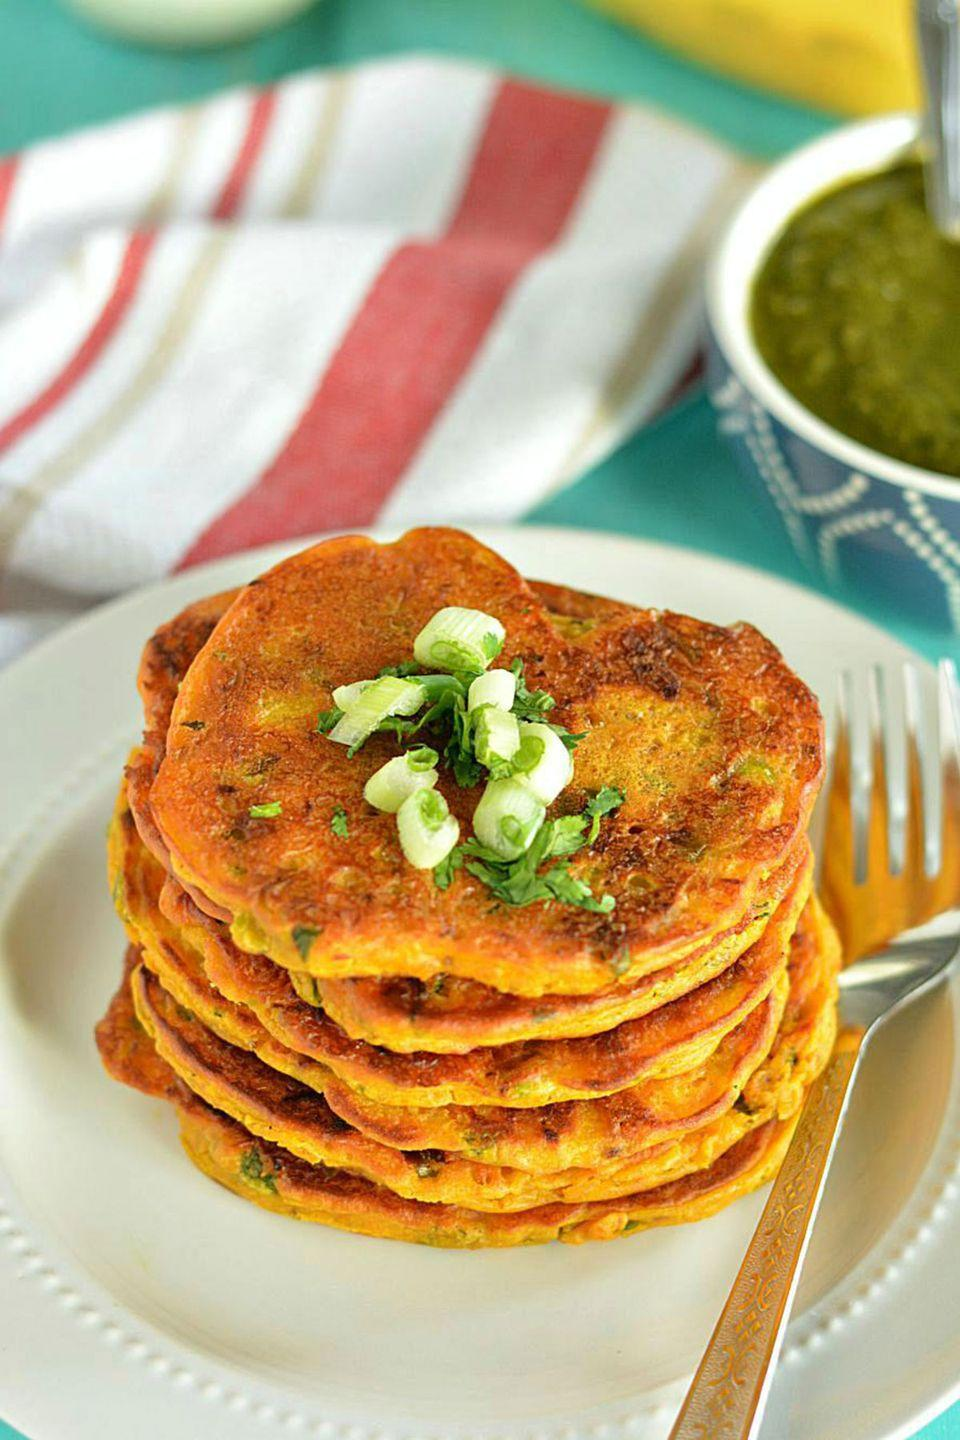 """<p>These flavorful pumpkin pancakes are worth getting out of bed for! You can make them for breakfast, lunch, or dinner.</p><p><strong>Get the recipe at <a href=""""http://www.ruchiskitchen.com/recipe/savory-pumpkin-pancakes/"""" rel=""""nofollow noopener"""" target=""""_blank"""" data-ylk=""""slk:Ruchi's Kitchen"""" class=""""link rapid-noclick-resp"""">Ruchi's Kitchen</a>.</strong><br></p><p><a class=""""link rapid-noclick-resp"""" href=""""https://www.amazon.com/dp/B00006IUWL?tag=syn-yahoo-20&ascsubtag=%5Bartid%7C10050.g.619%5Bsrc%7Cyahoo-us"""" rel=""""nofollow noopener"""" target=""""_blank"""" data-ylk=""""slk:SHOP GRIDDLES"""">SHOP GRIDDLES</a></p>"""